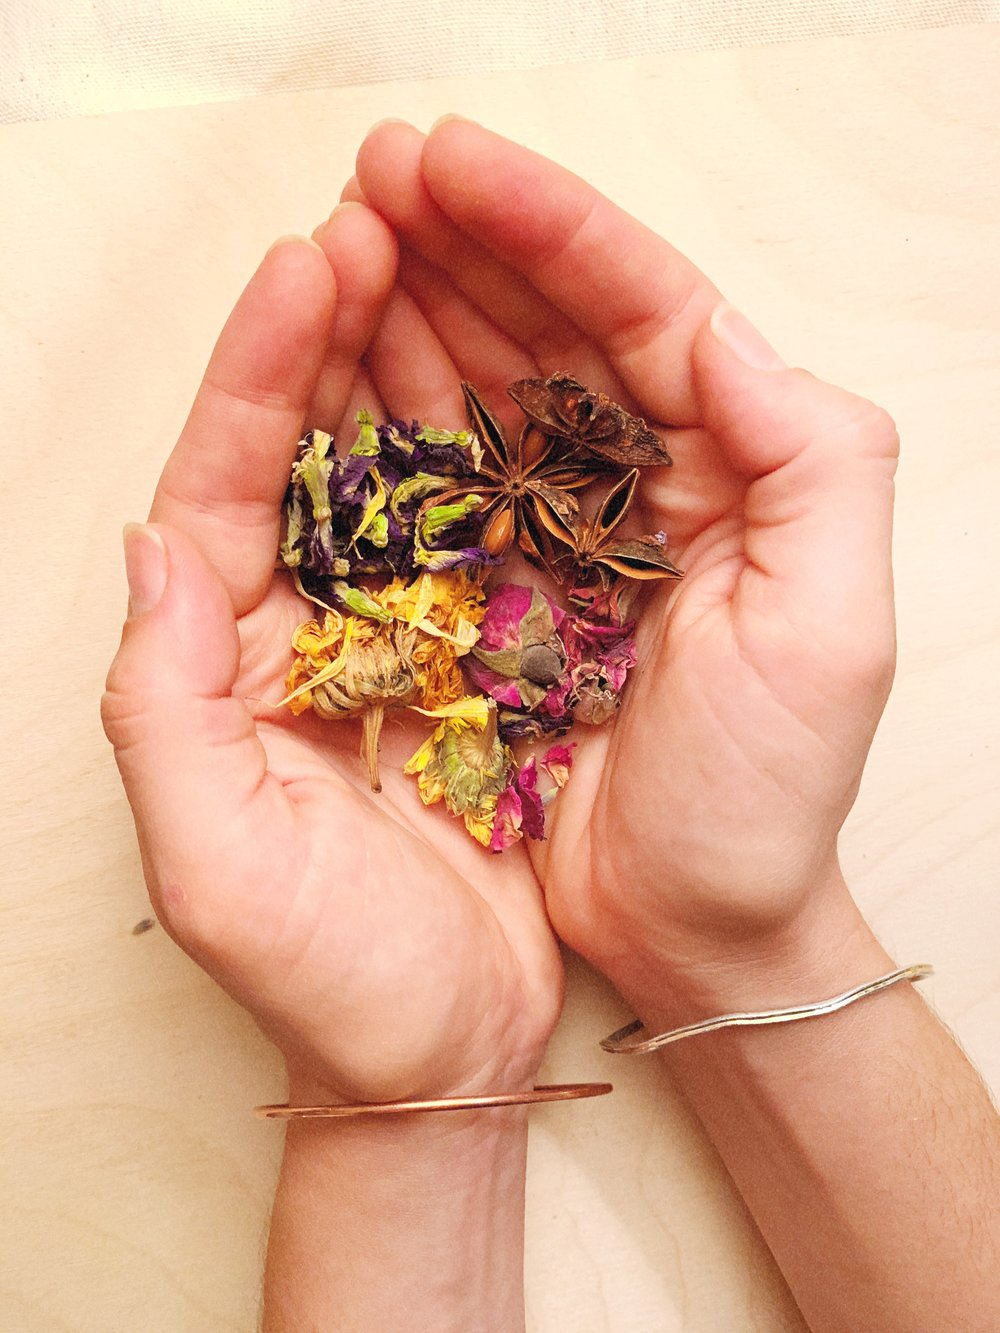 Summer 2019 - 6/15/19 Herbs for FertilityThis workshop will focus on herbal approaches to fertility. We will be drinking teas and having tinctures as we talk about different uses of herbal medicine. Holistic approaches to nutrition, wellness, and clinical factors that could affect fertility will be discussed as well.Date and TimeJune 15, 20191-2:30pmJuniper, 639 Vanderbilt Avecost- $35